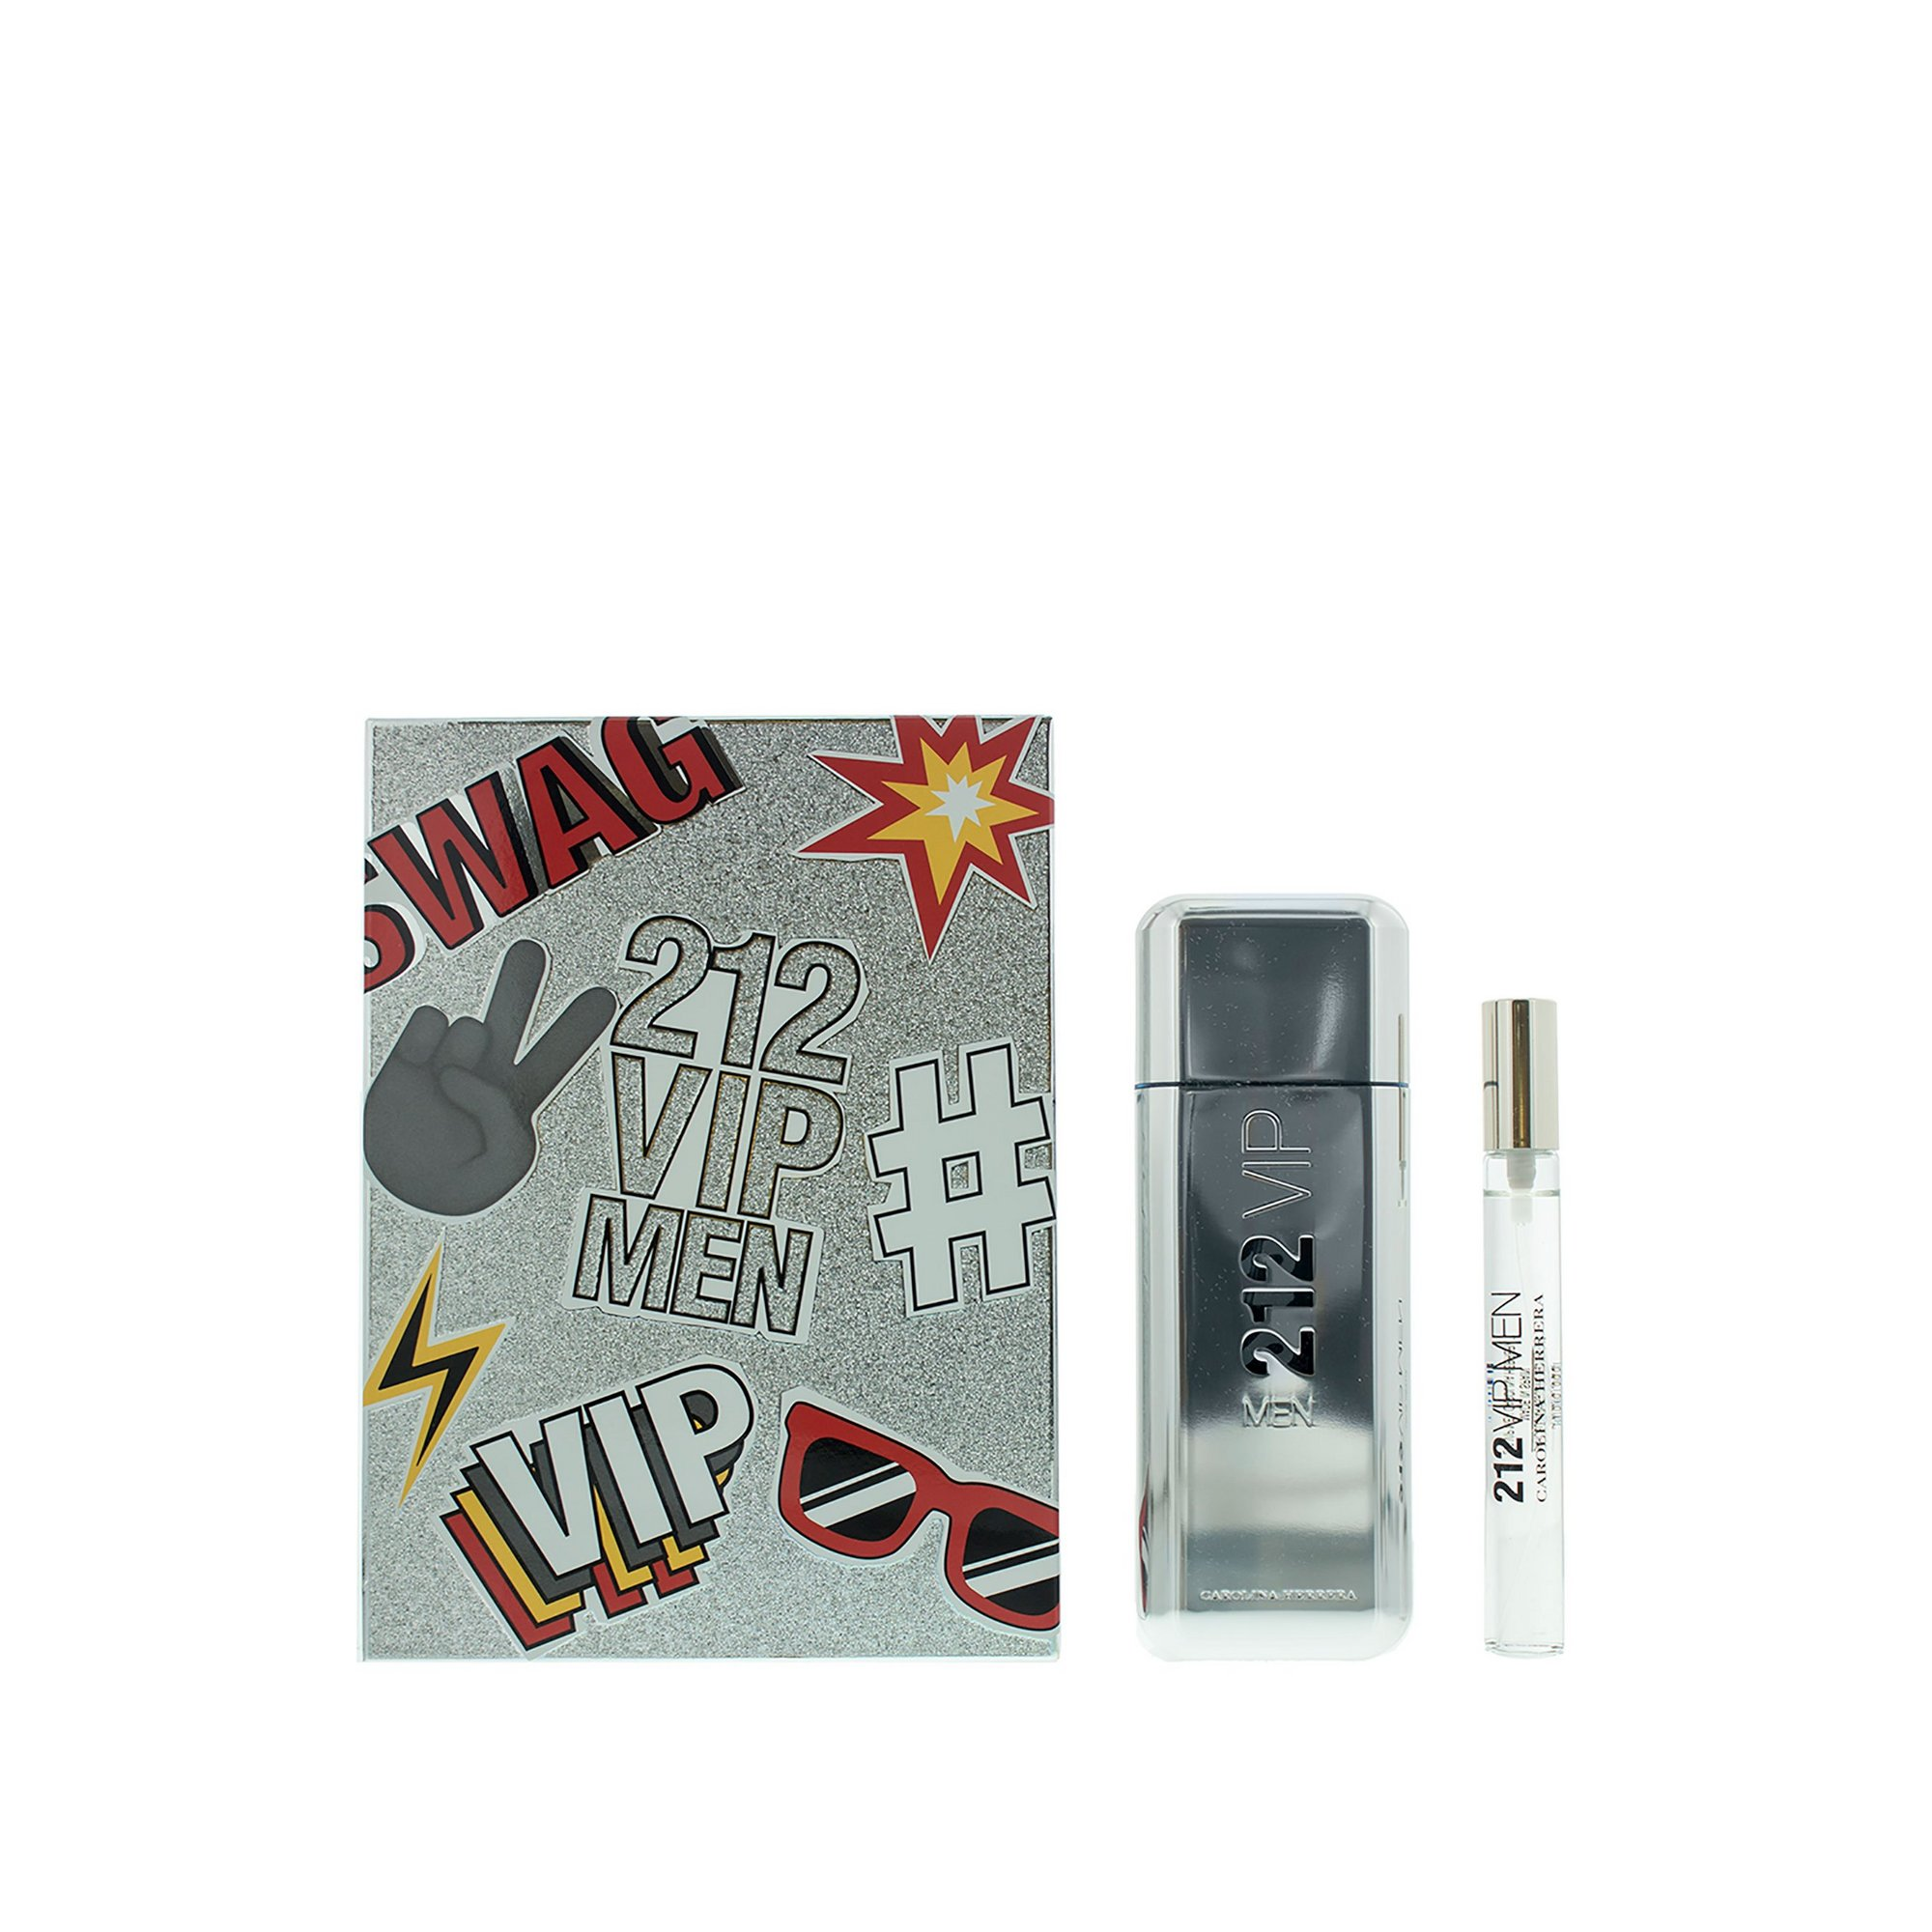 Image of Carolina Herrera 212 VIP Men 100ml EDT Gift Set